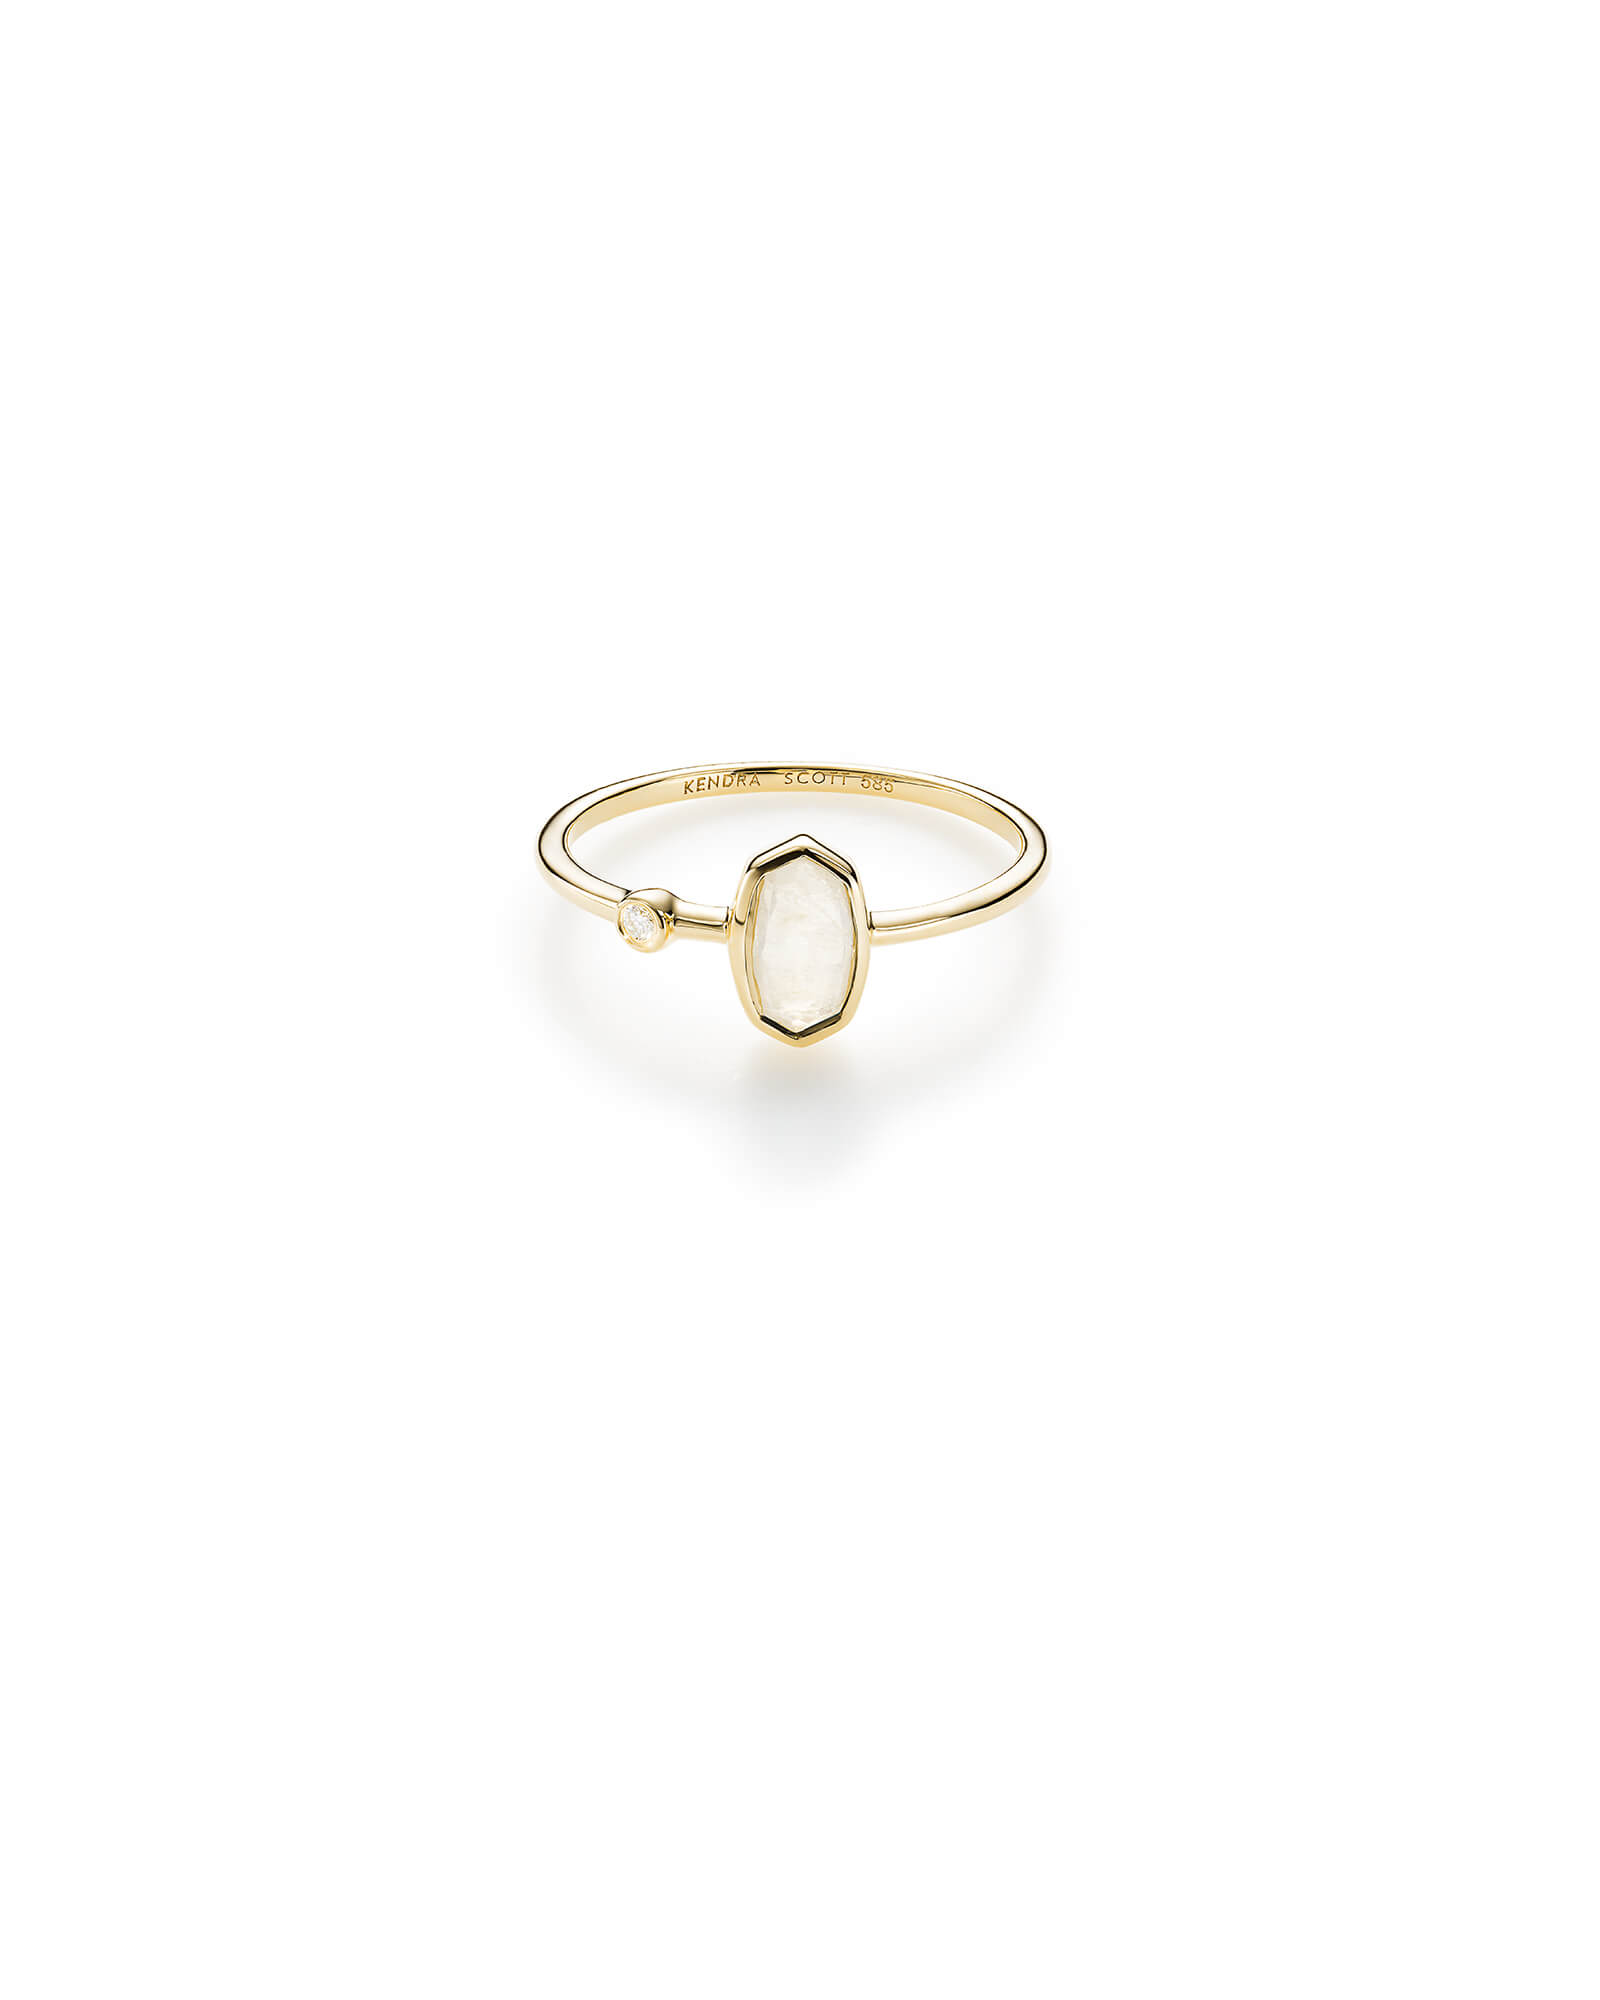 Chastain Ring in Rainbow Moonstone and 14k Yellow Gold - 5